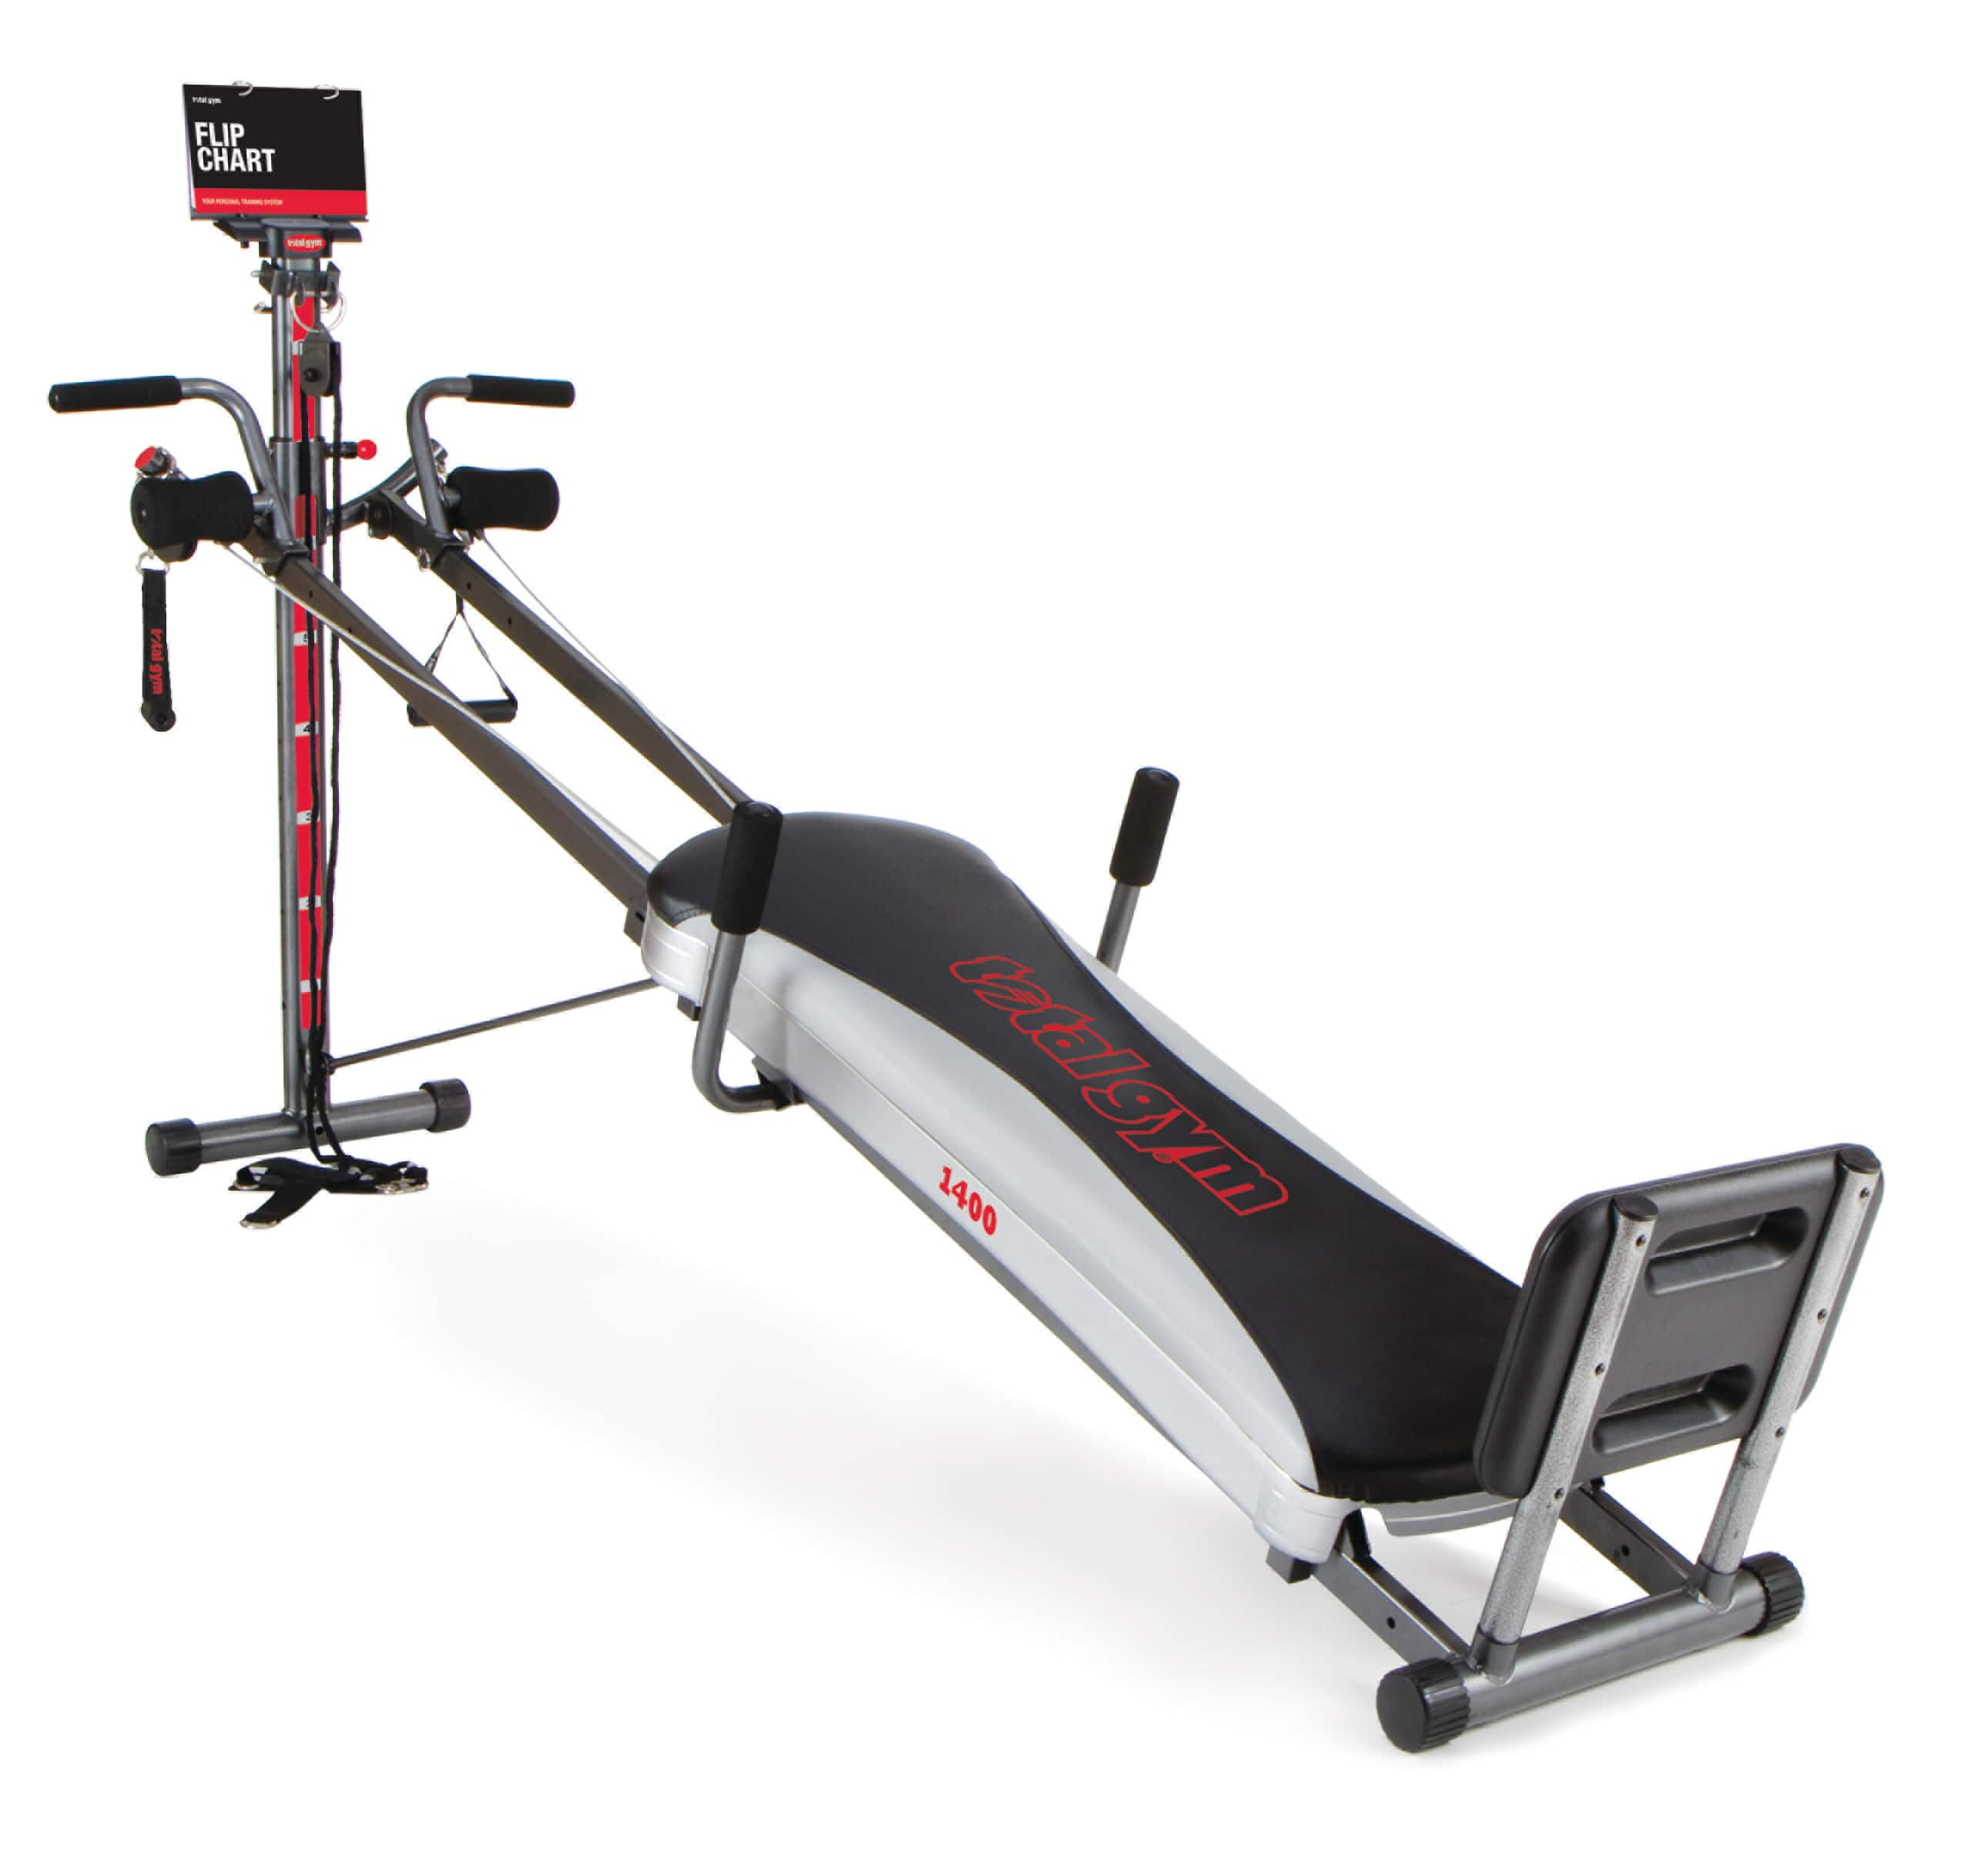 Total Gym 1400 Total Home Gym with Workout DVD - Full Body Workout Machine with 60+ Exercises $195